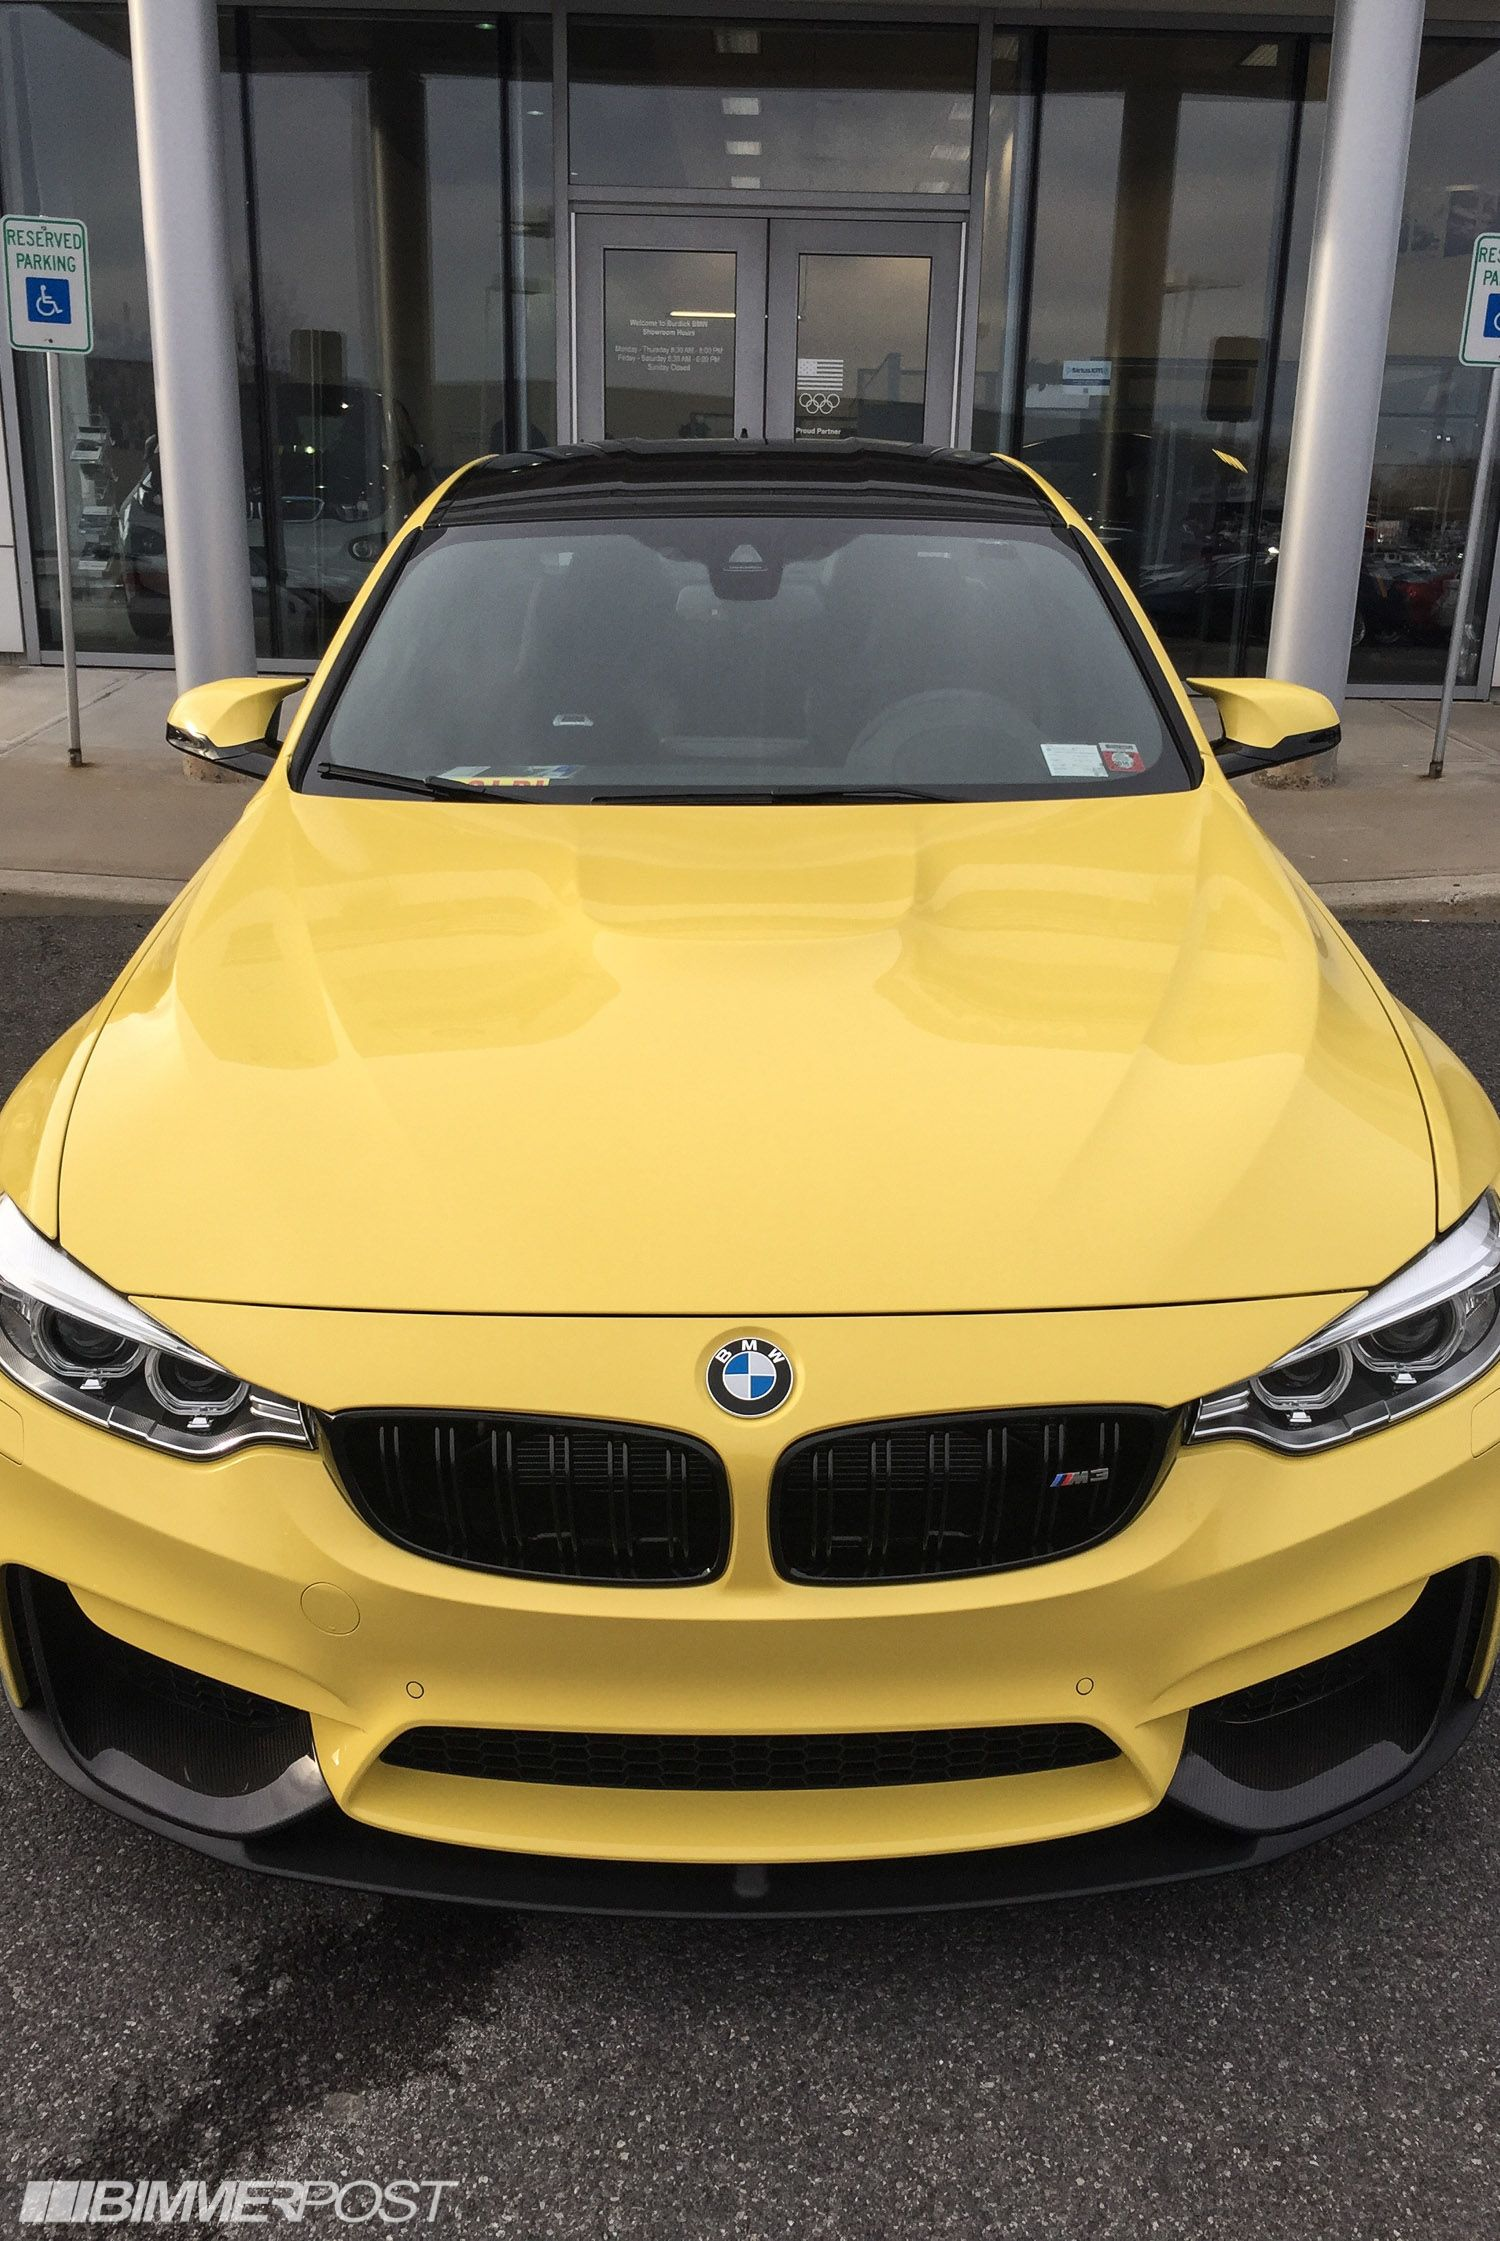 Dakar Yellow F80 M3 with M Performance Parts - updated ...